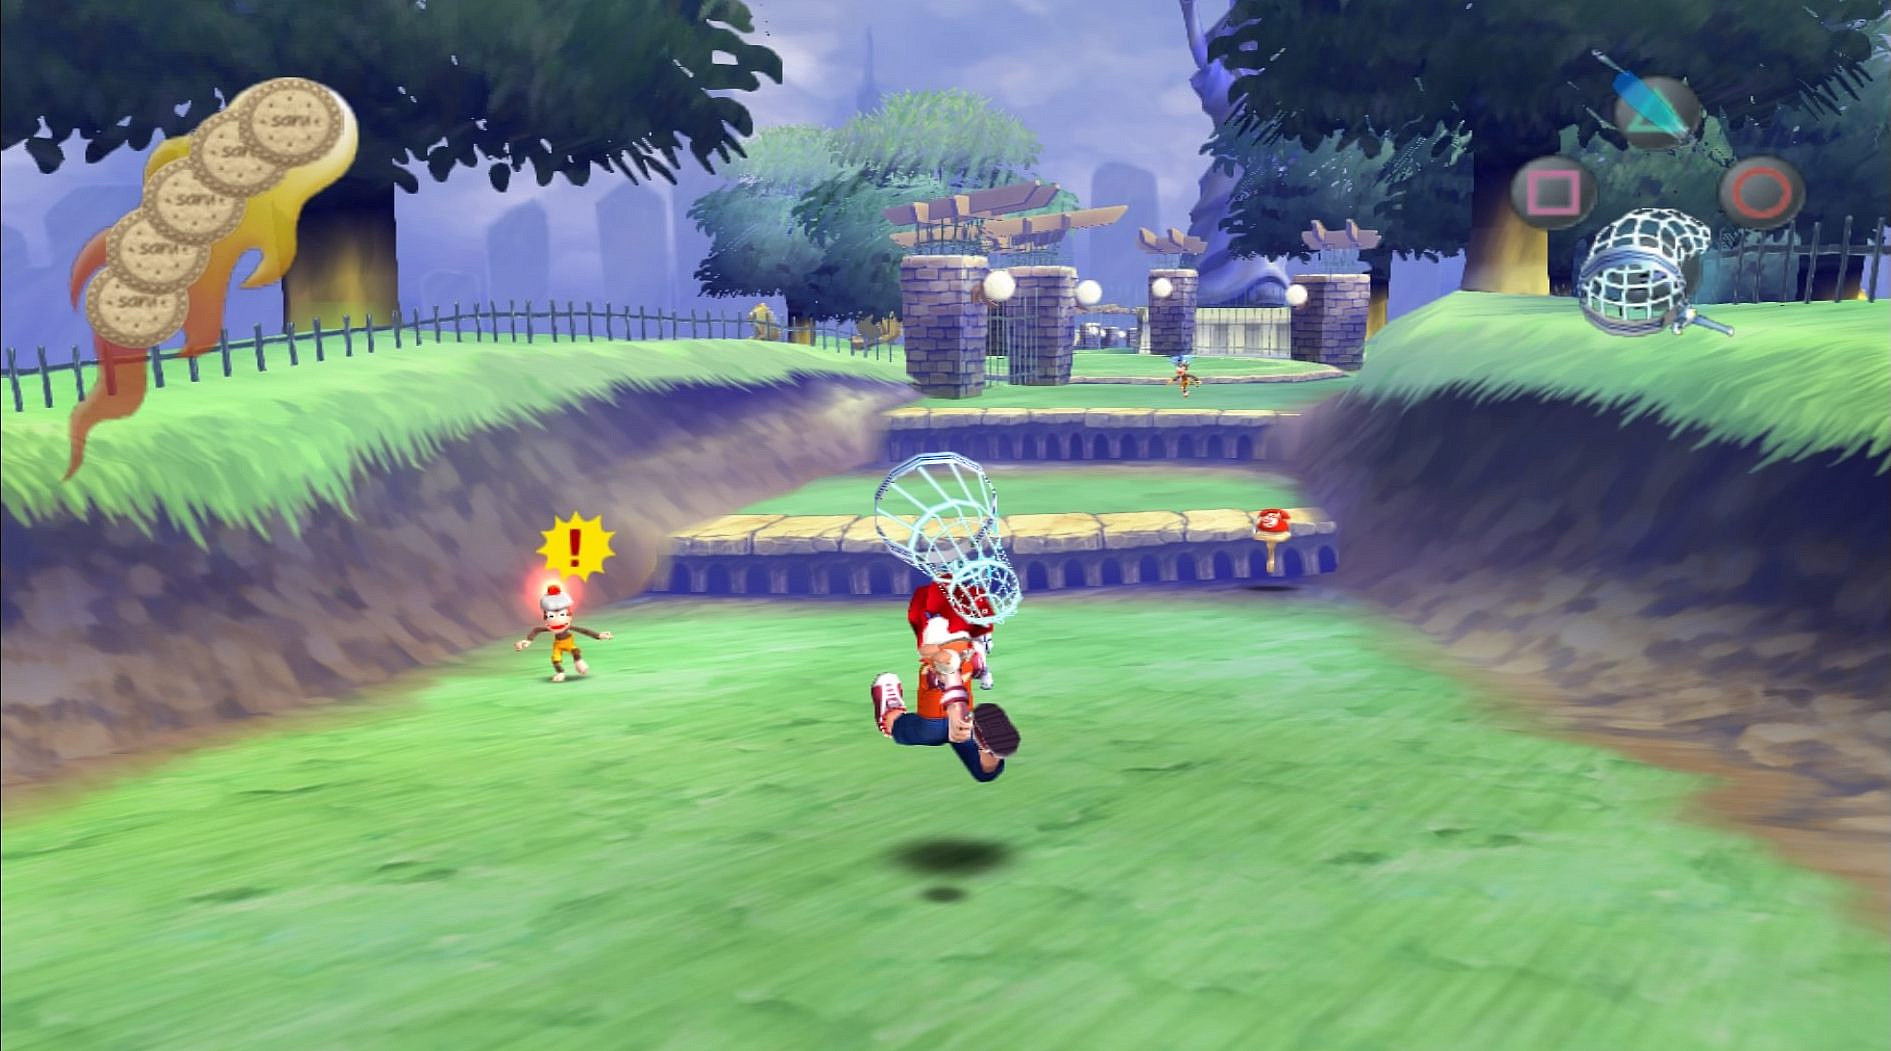 Main character Hikaru chasing down a monkey with a net.